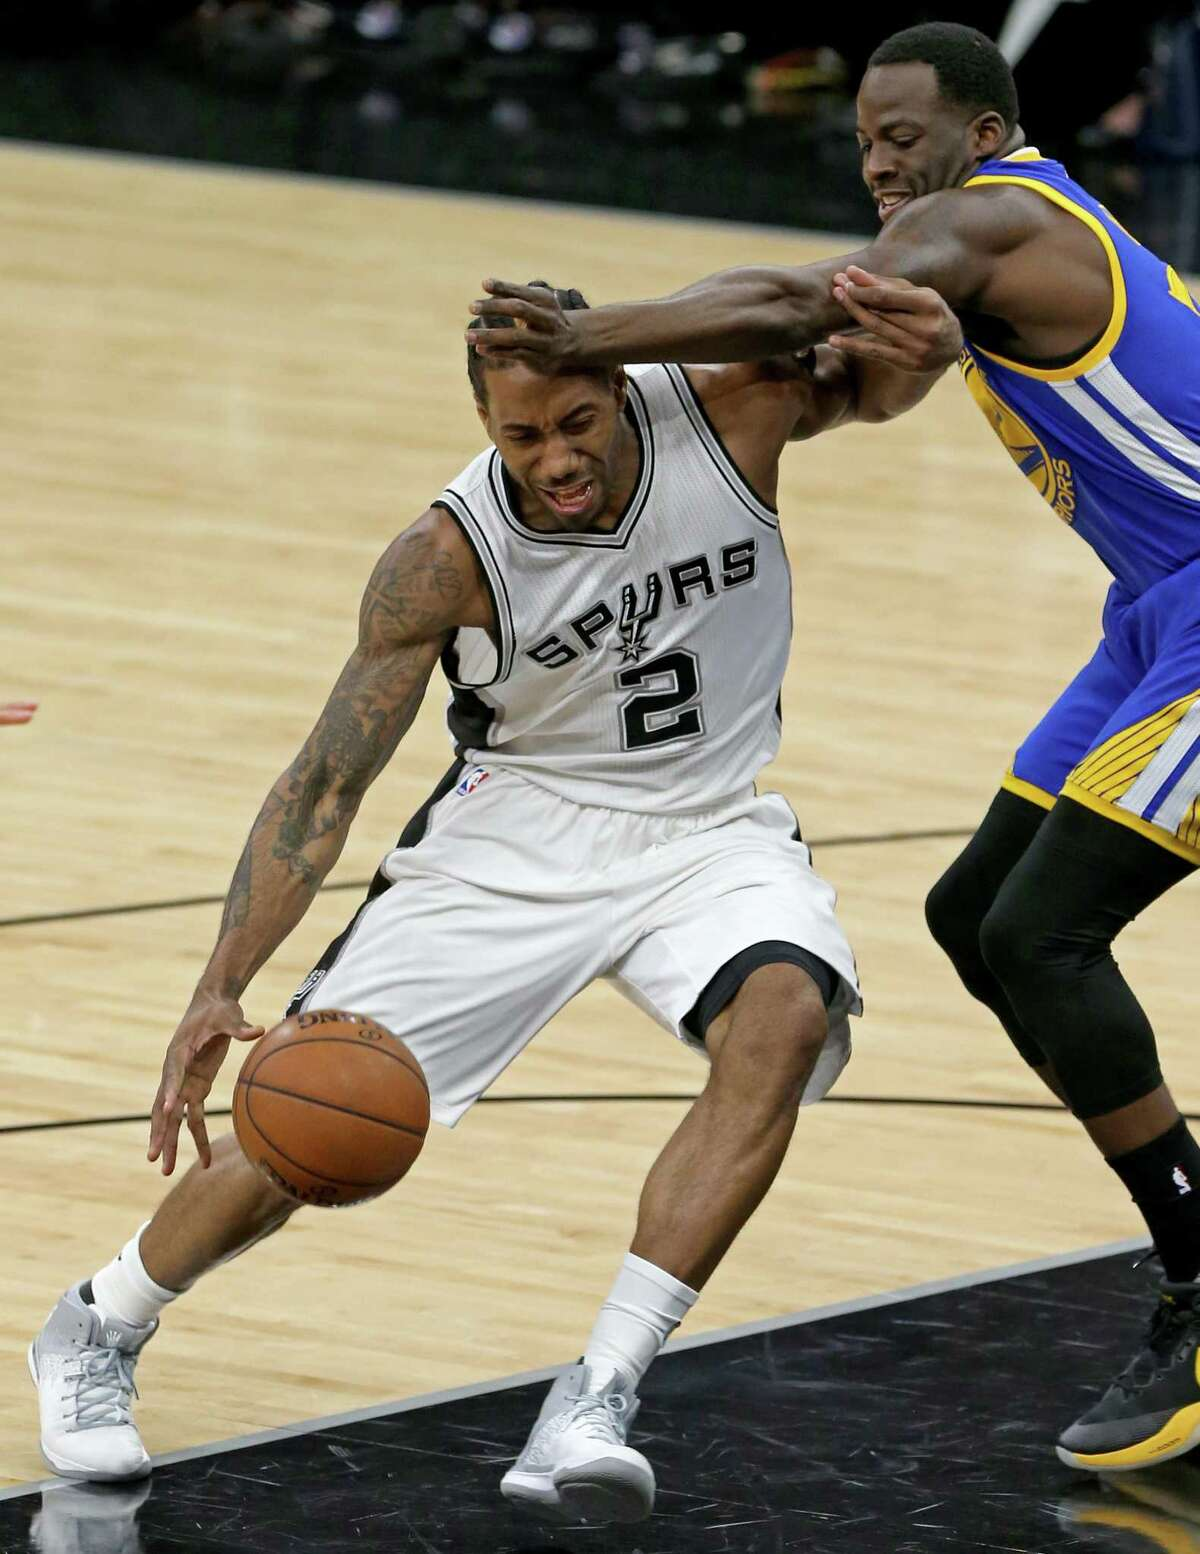 San Antonio Spurs' Kawhi Leonard looks for room around Golden State Warriors' Draymond Green during first half action Wednesday March 29, 2017 at the AT&T Center.